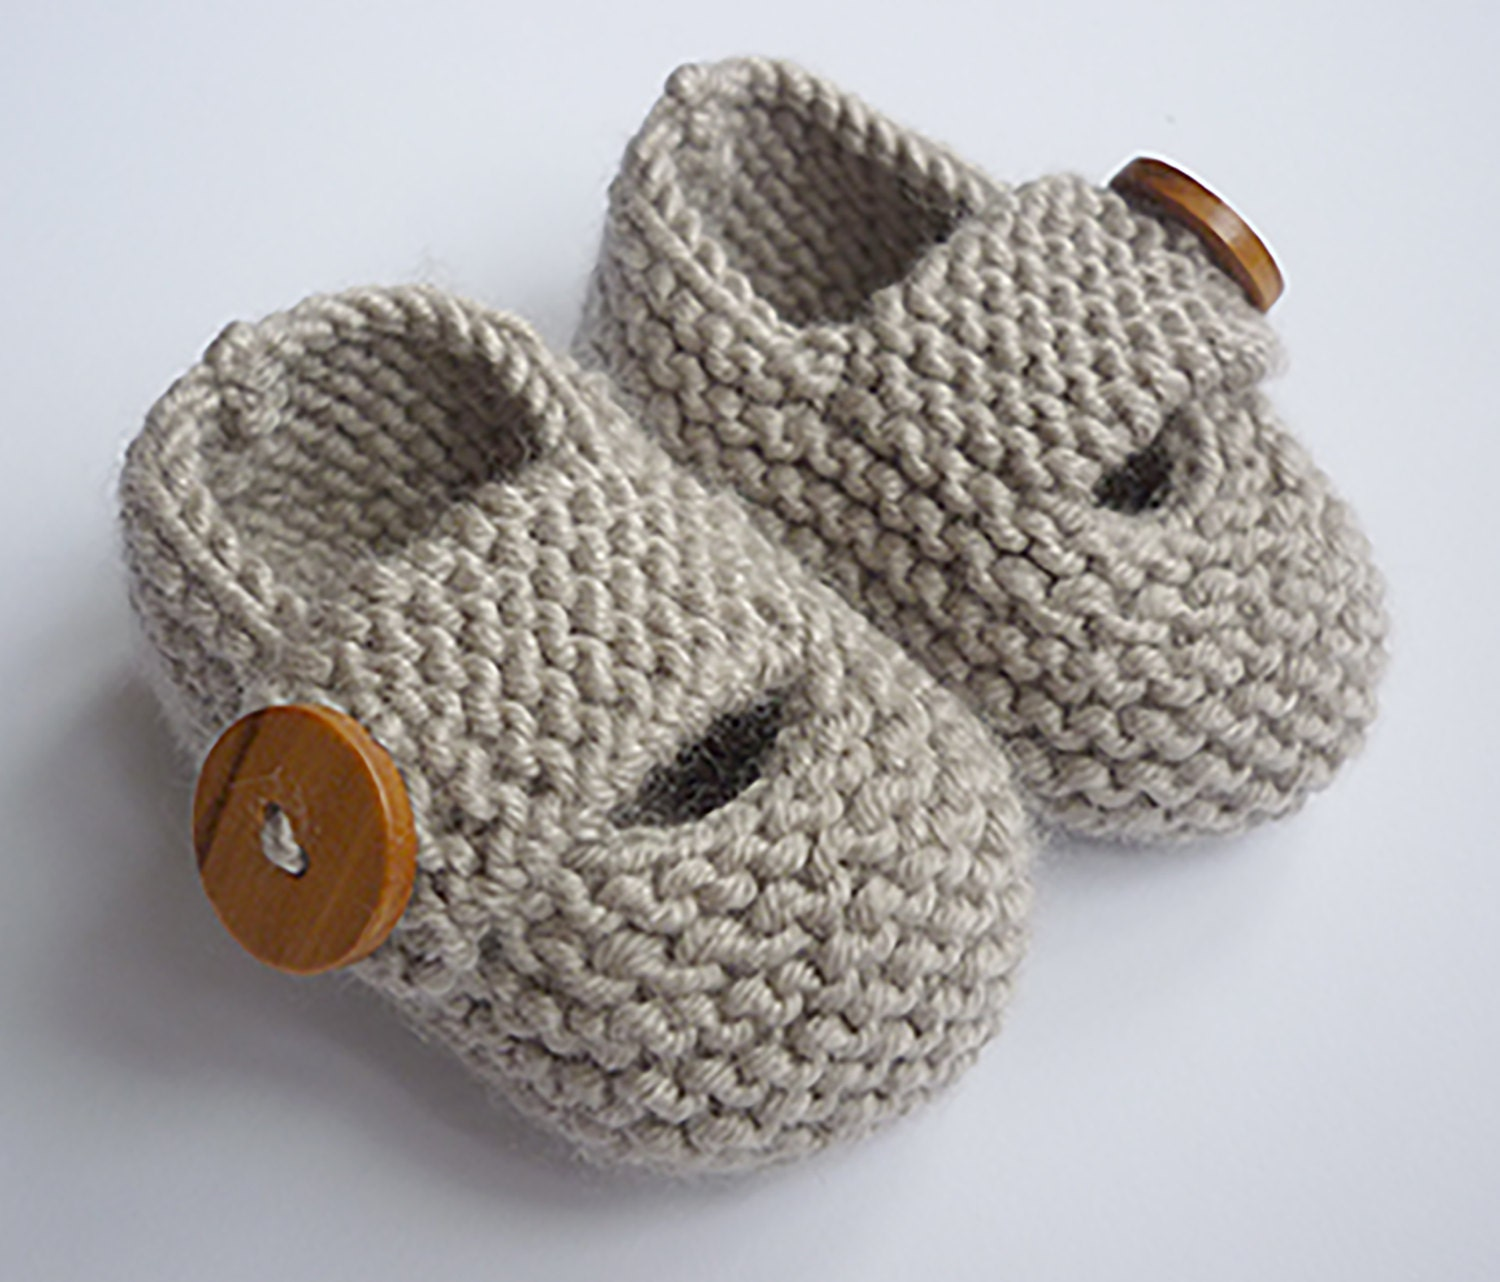 Knitting Pattern For Baby Boy Booties : Baby Booties Knitting Pattern Baby Shoes PDF Knitting